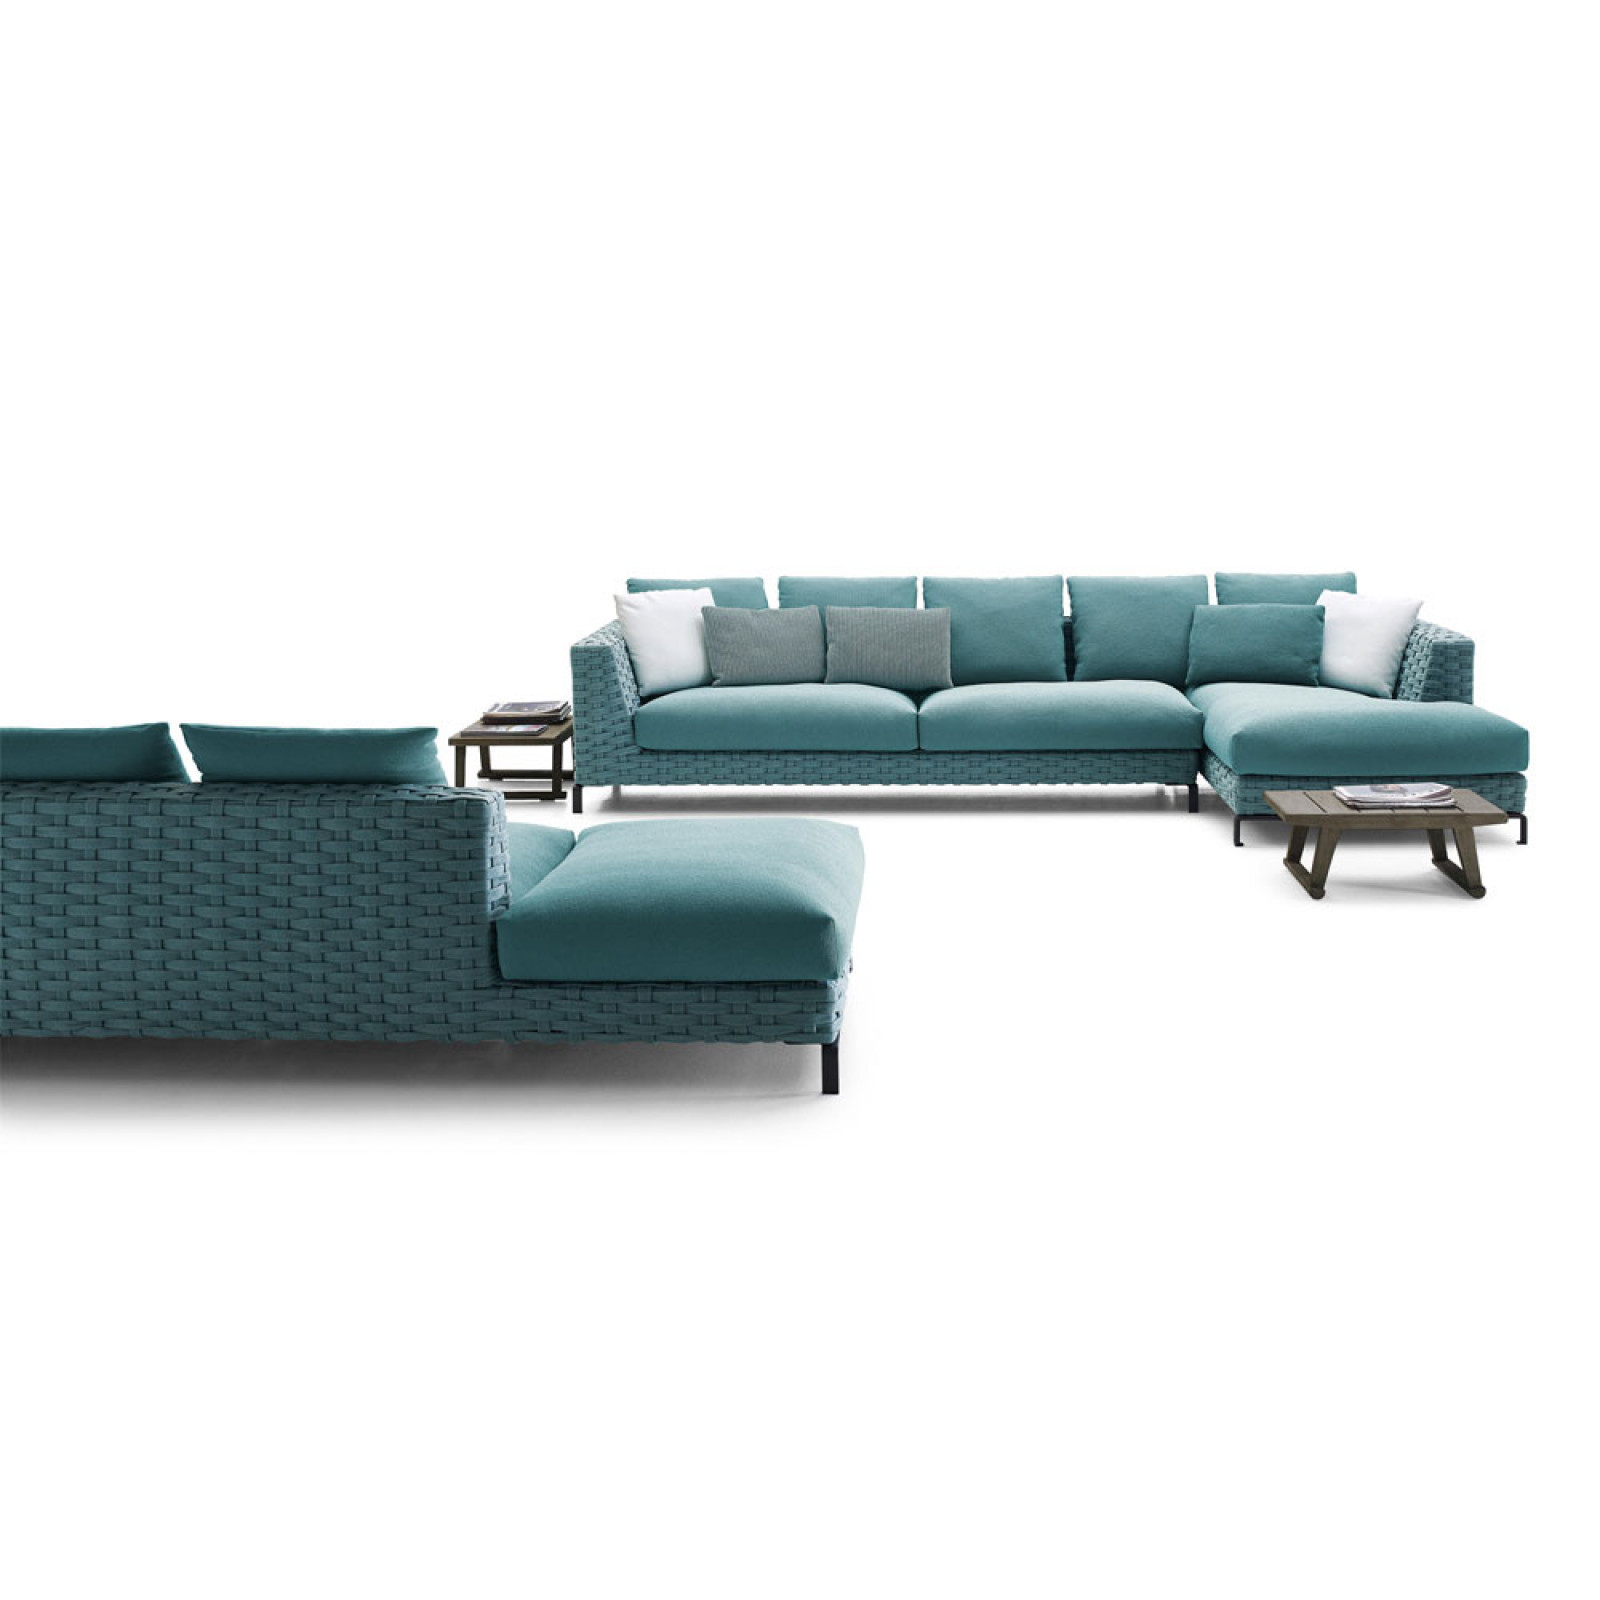 B&B Italia Ray Outdoor Fabric Loungesegruppe